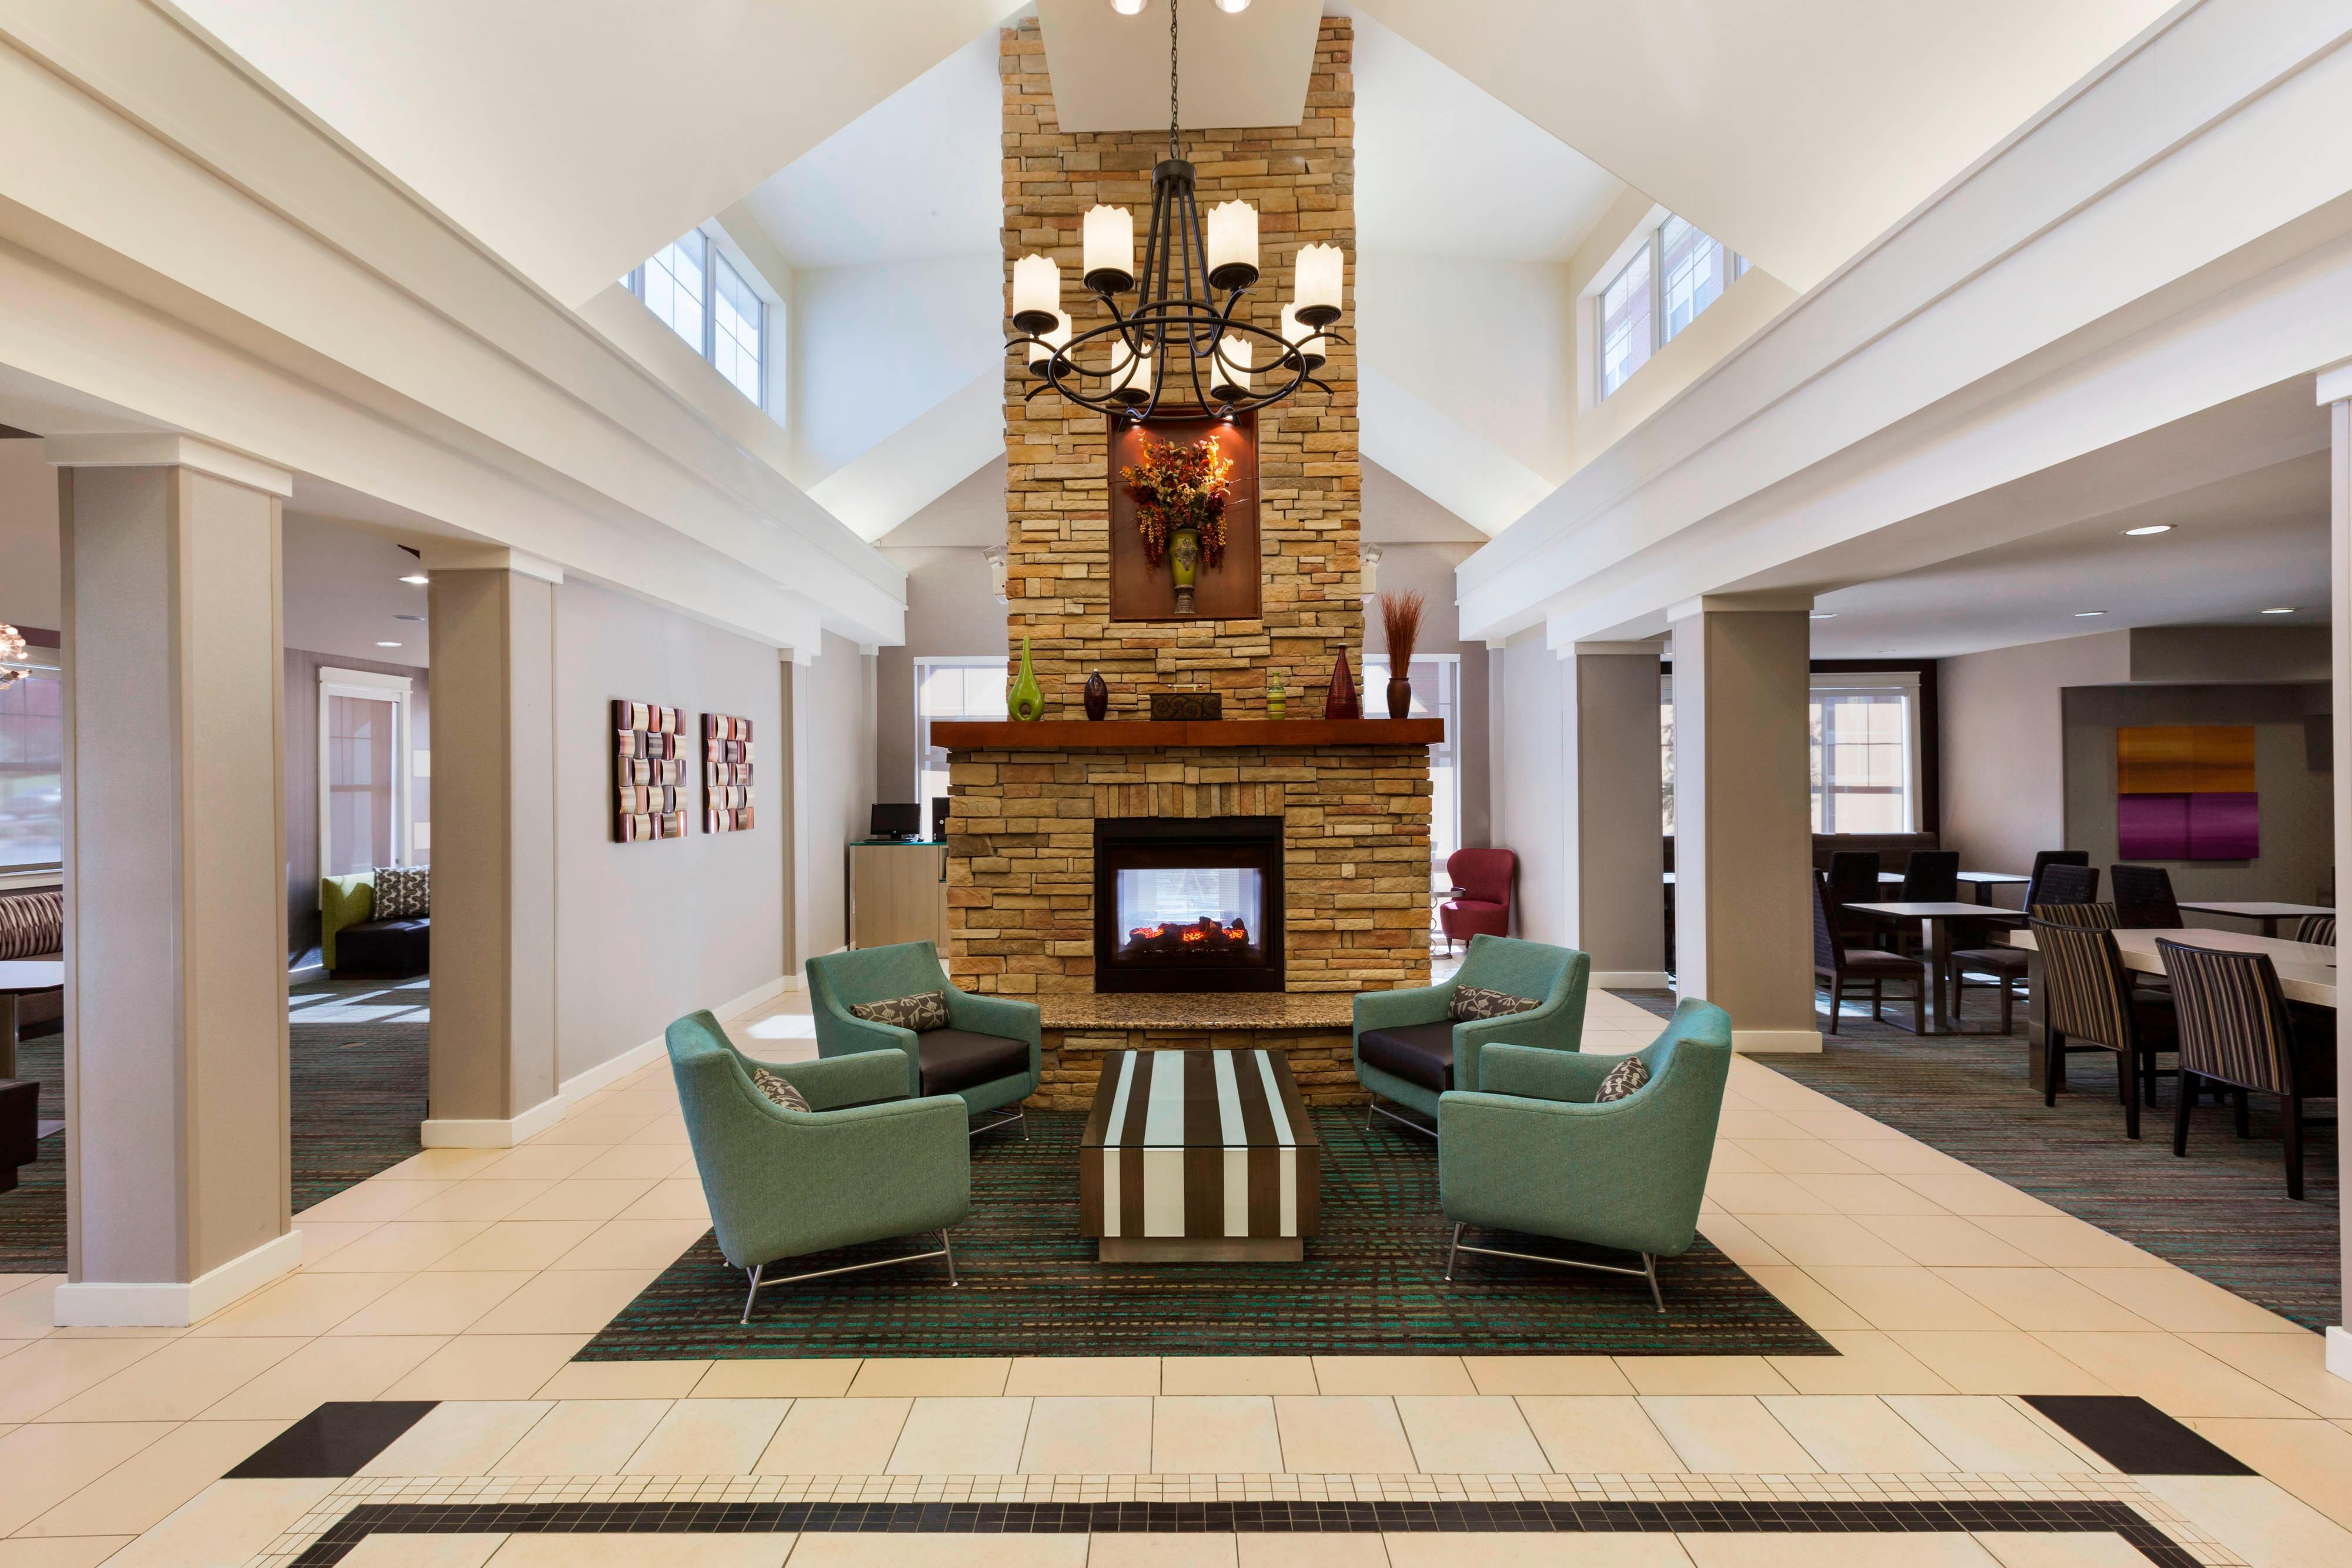 Lobby with sitting area and fireplace